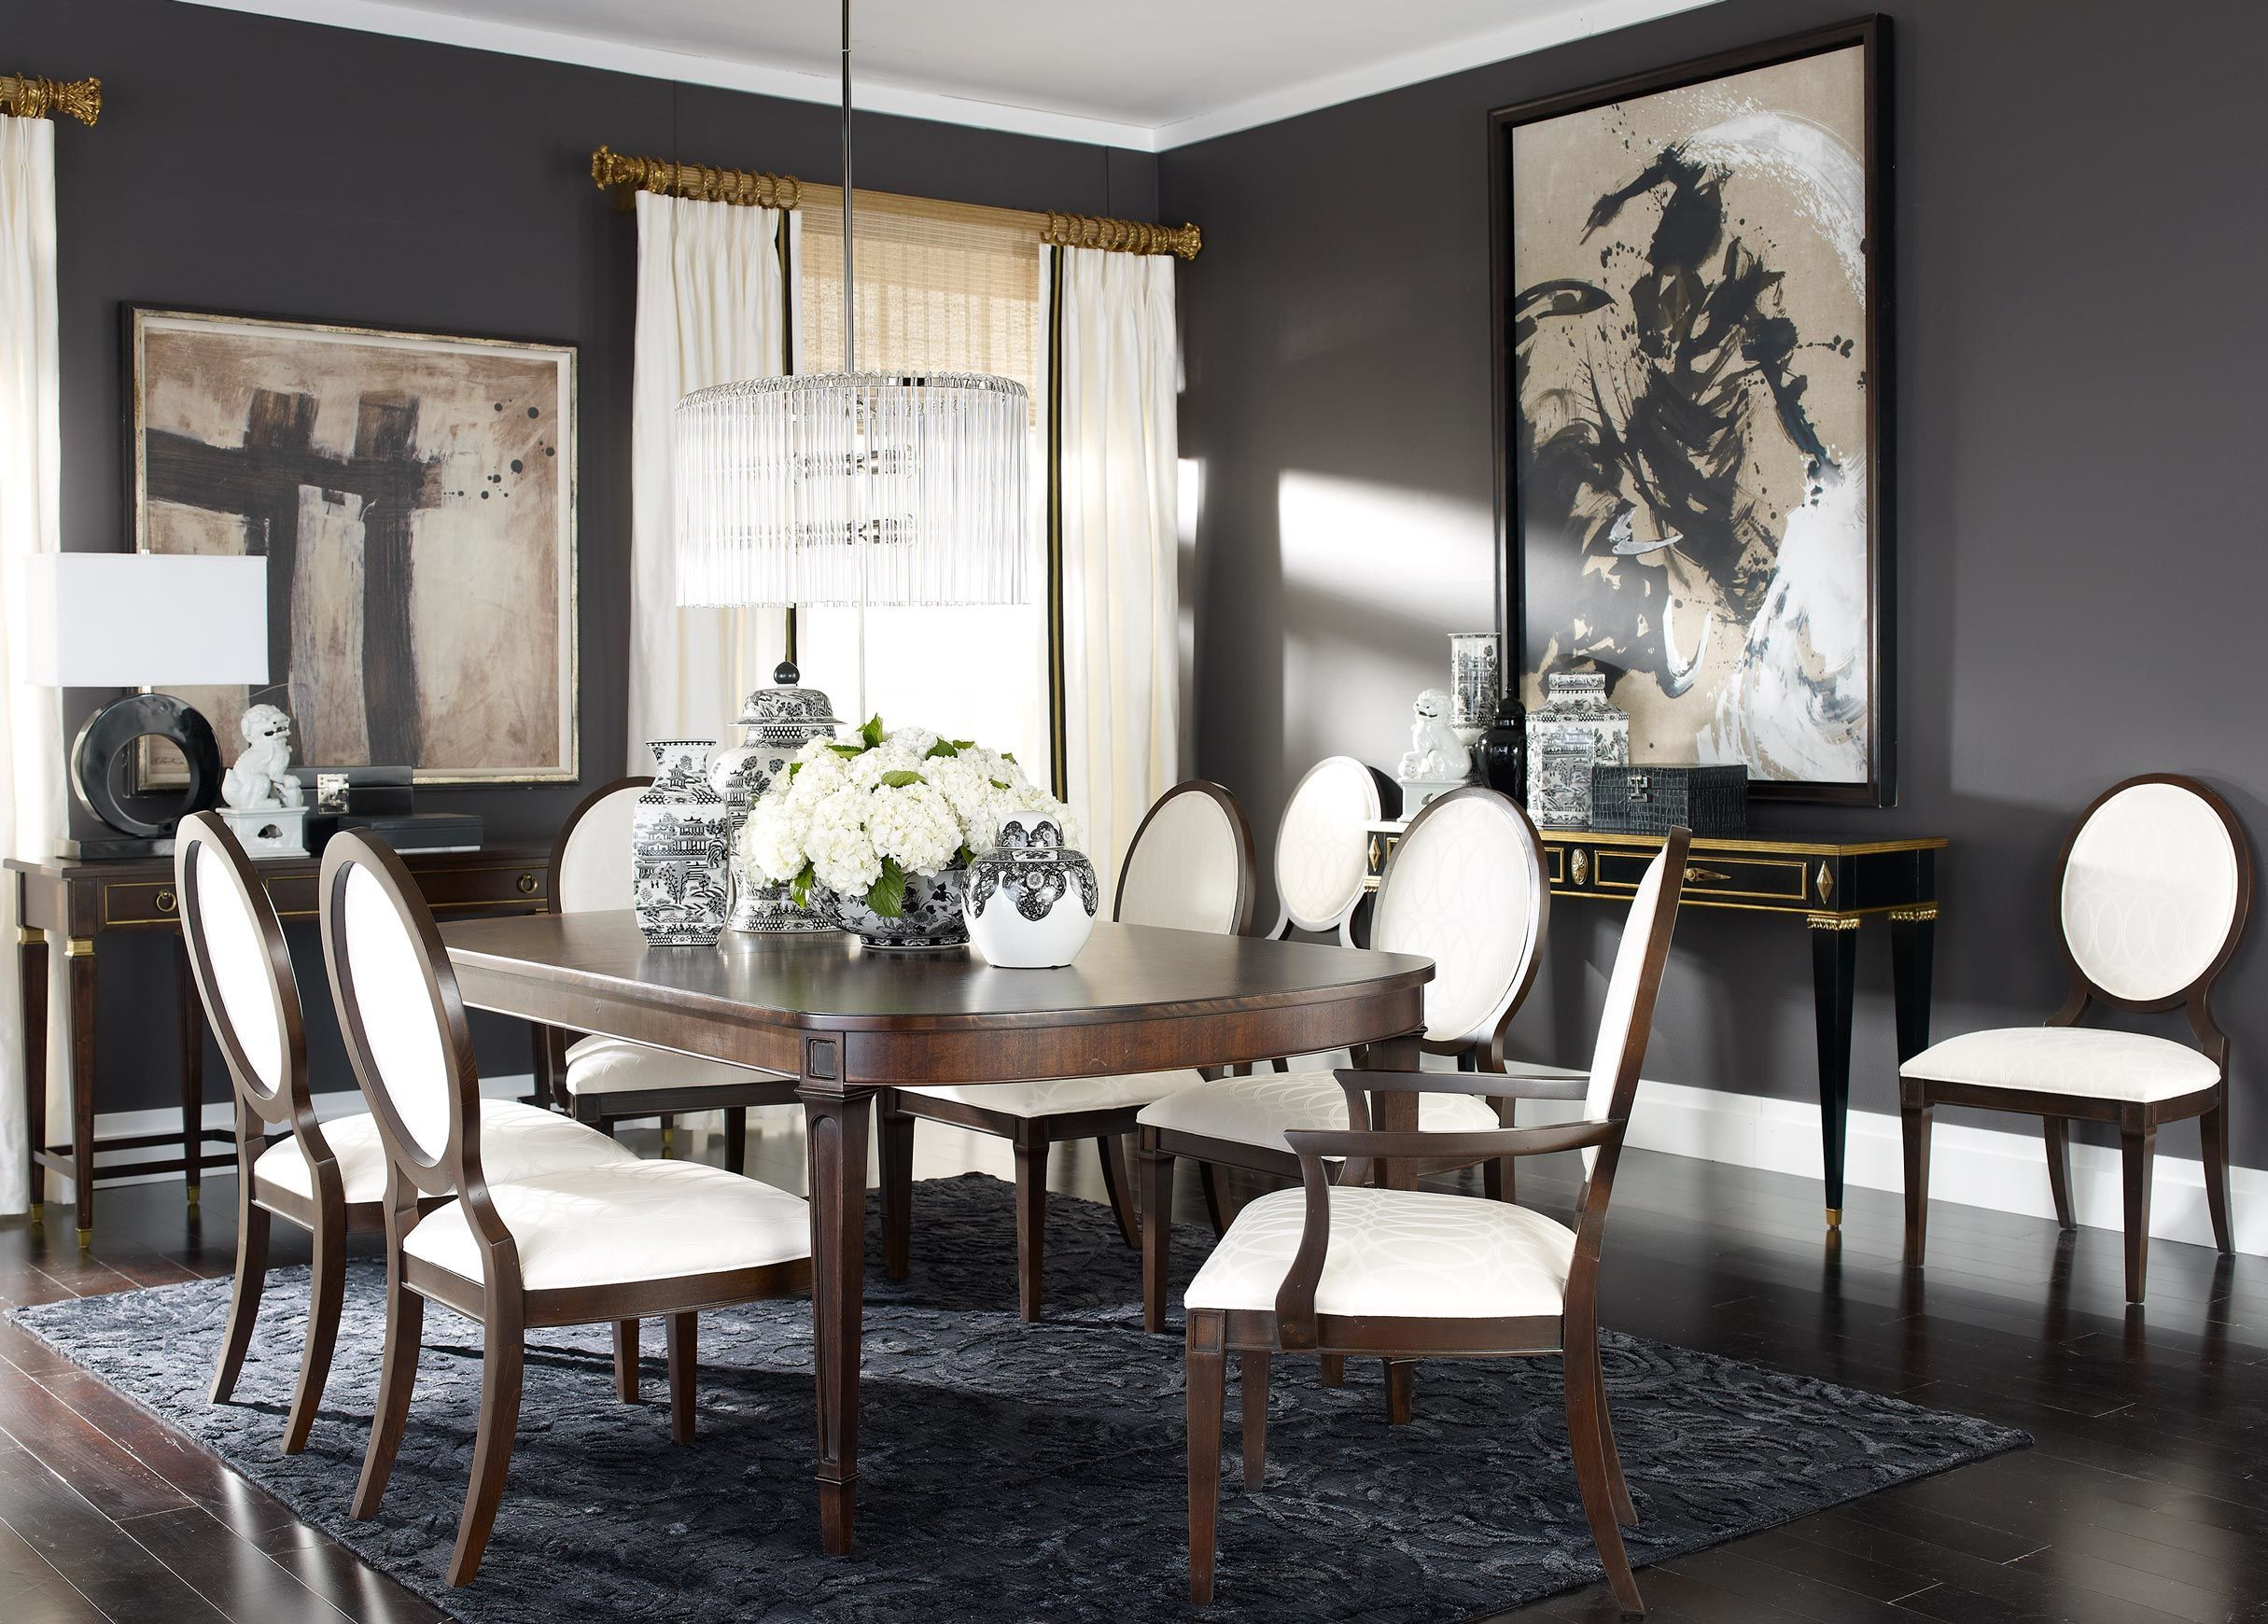 Lindsay Side Chair Side Chairs Furniture Dining Room Table